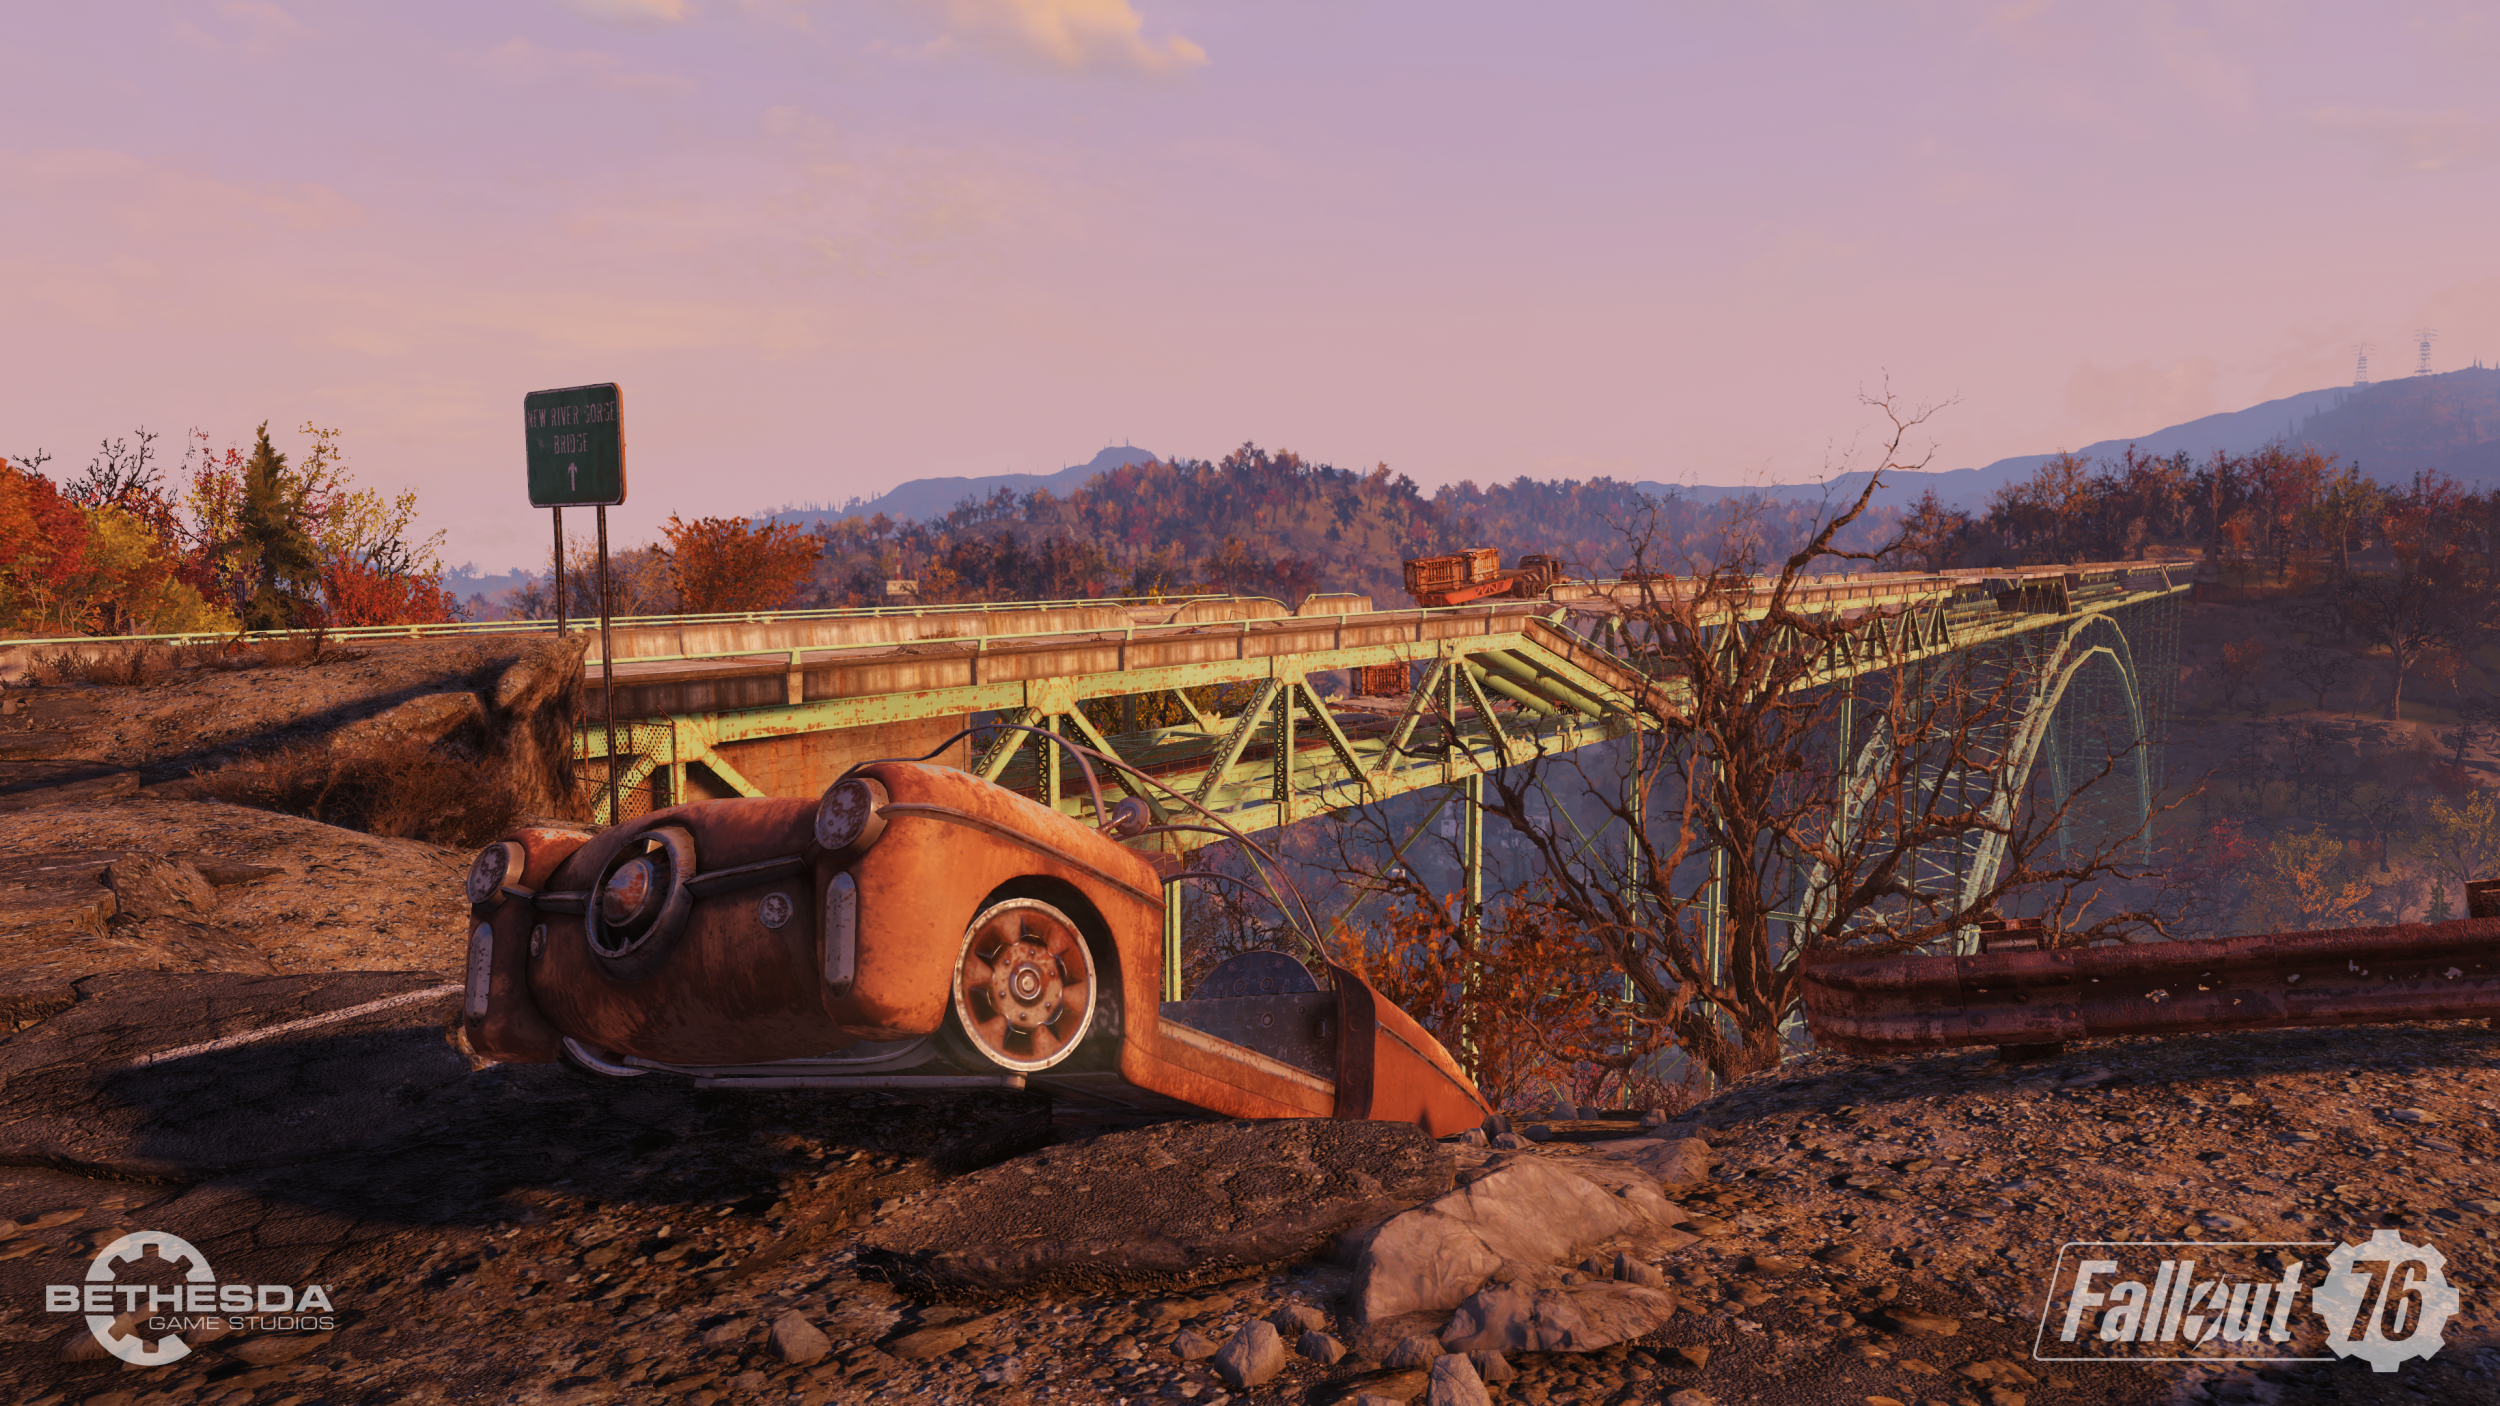 Fallout 76 beta impression review hands on demo header